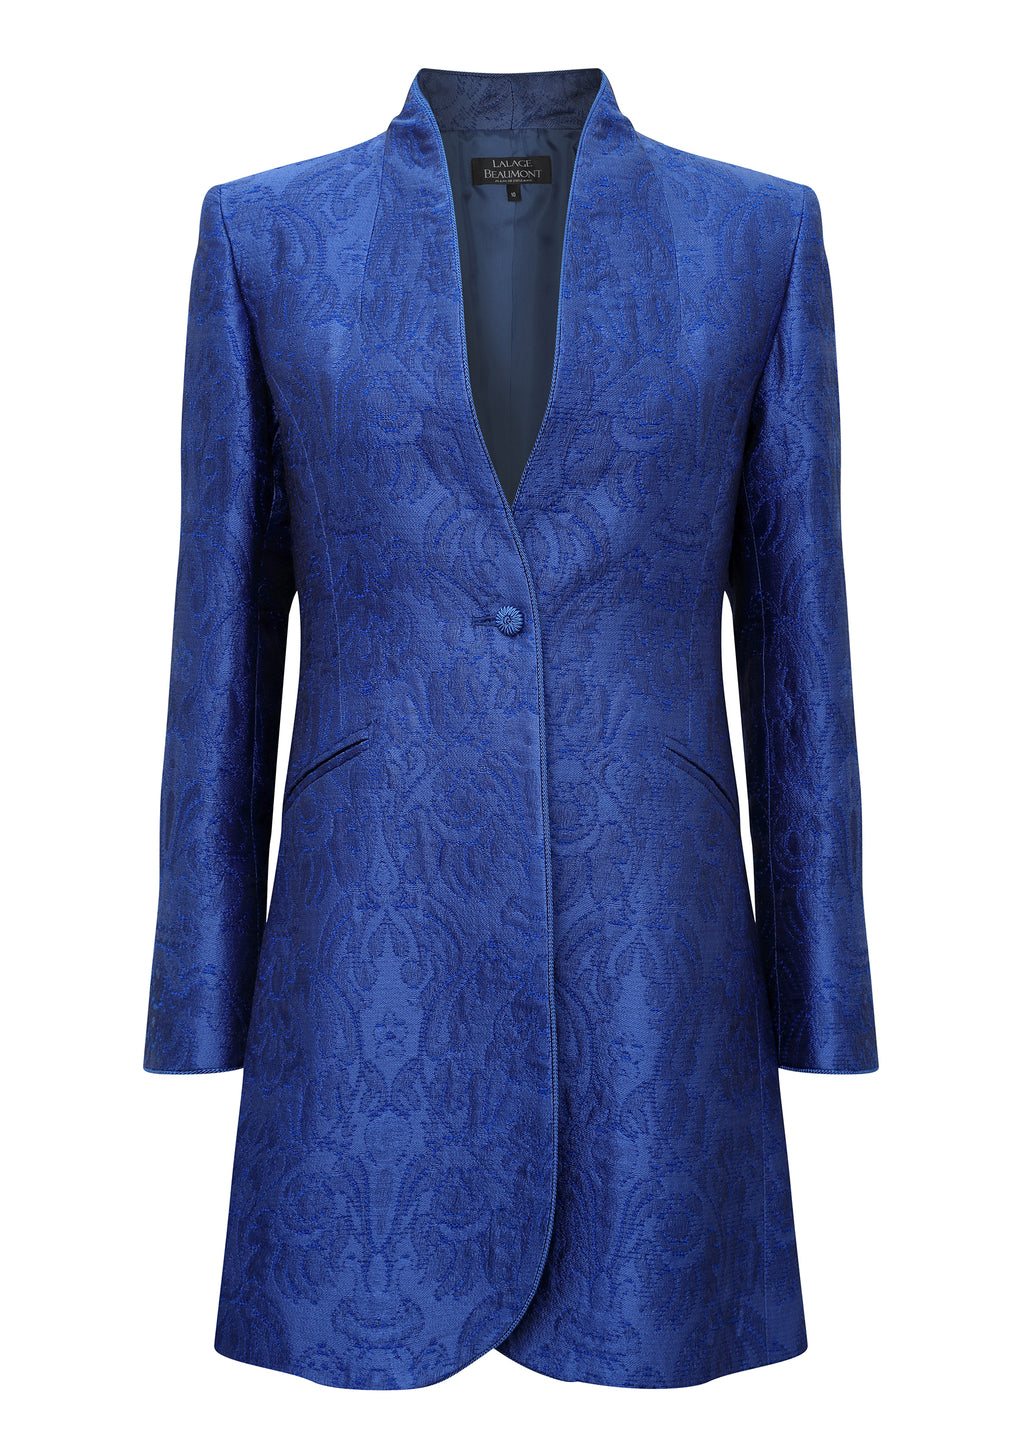 dress with jacket for weddings